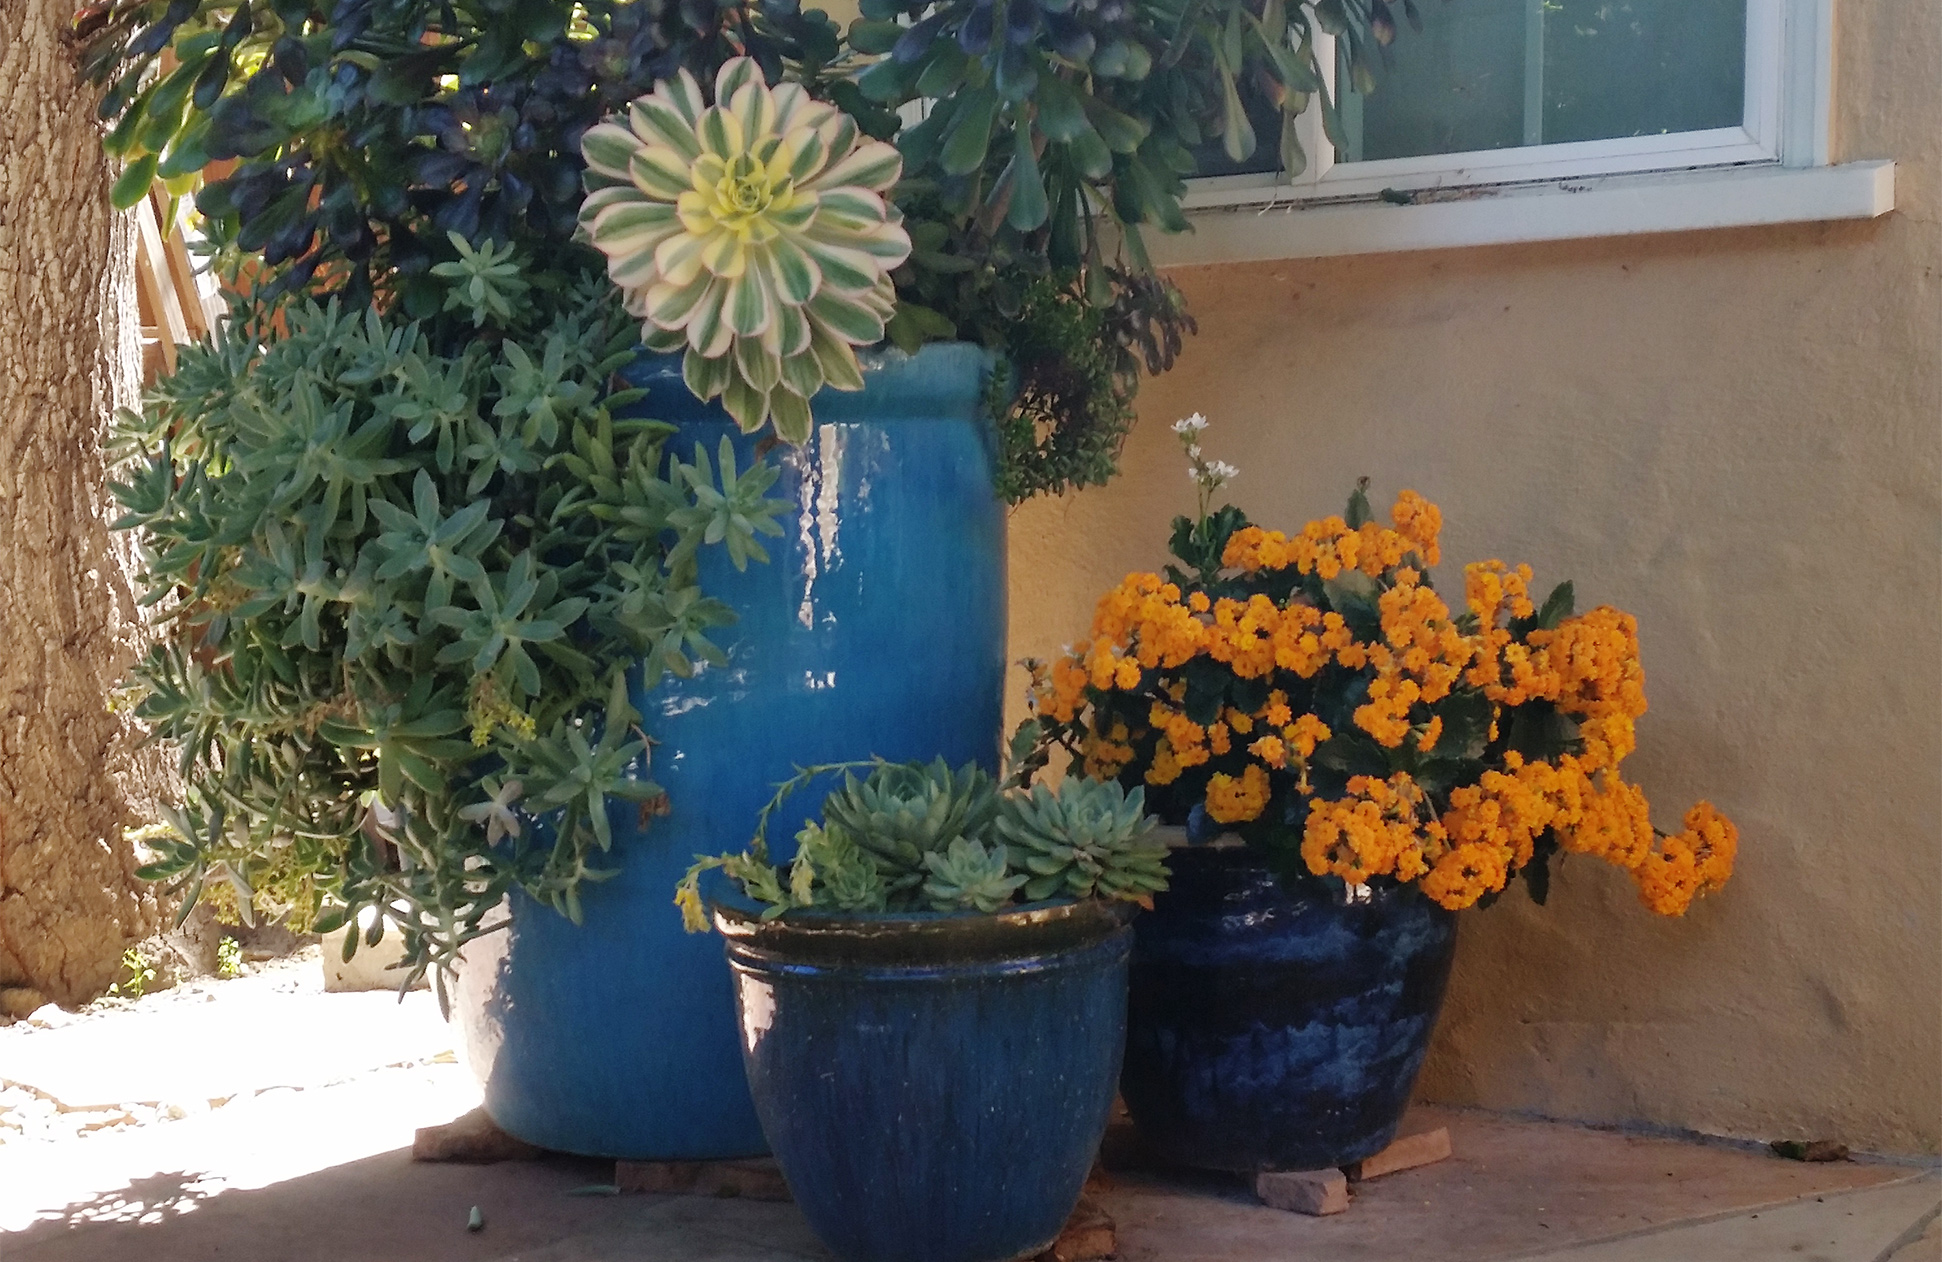 Succulents and flowers in beautiful blue containers, large and medium-sized.